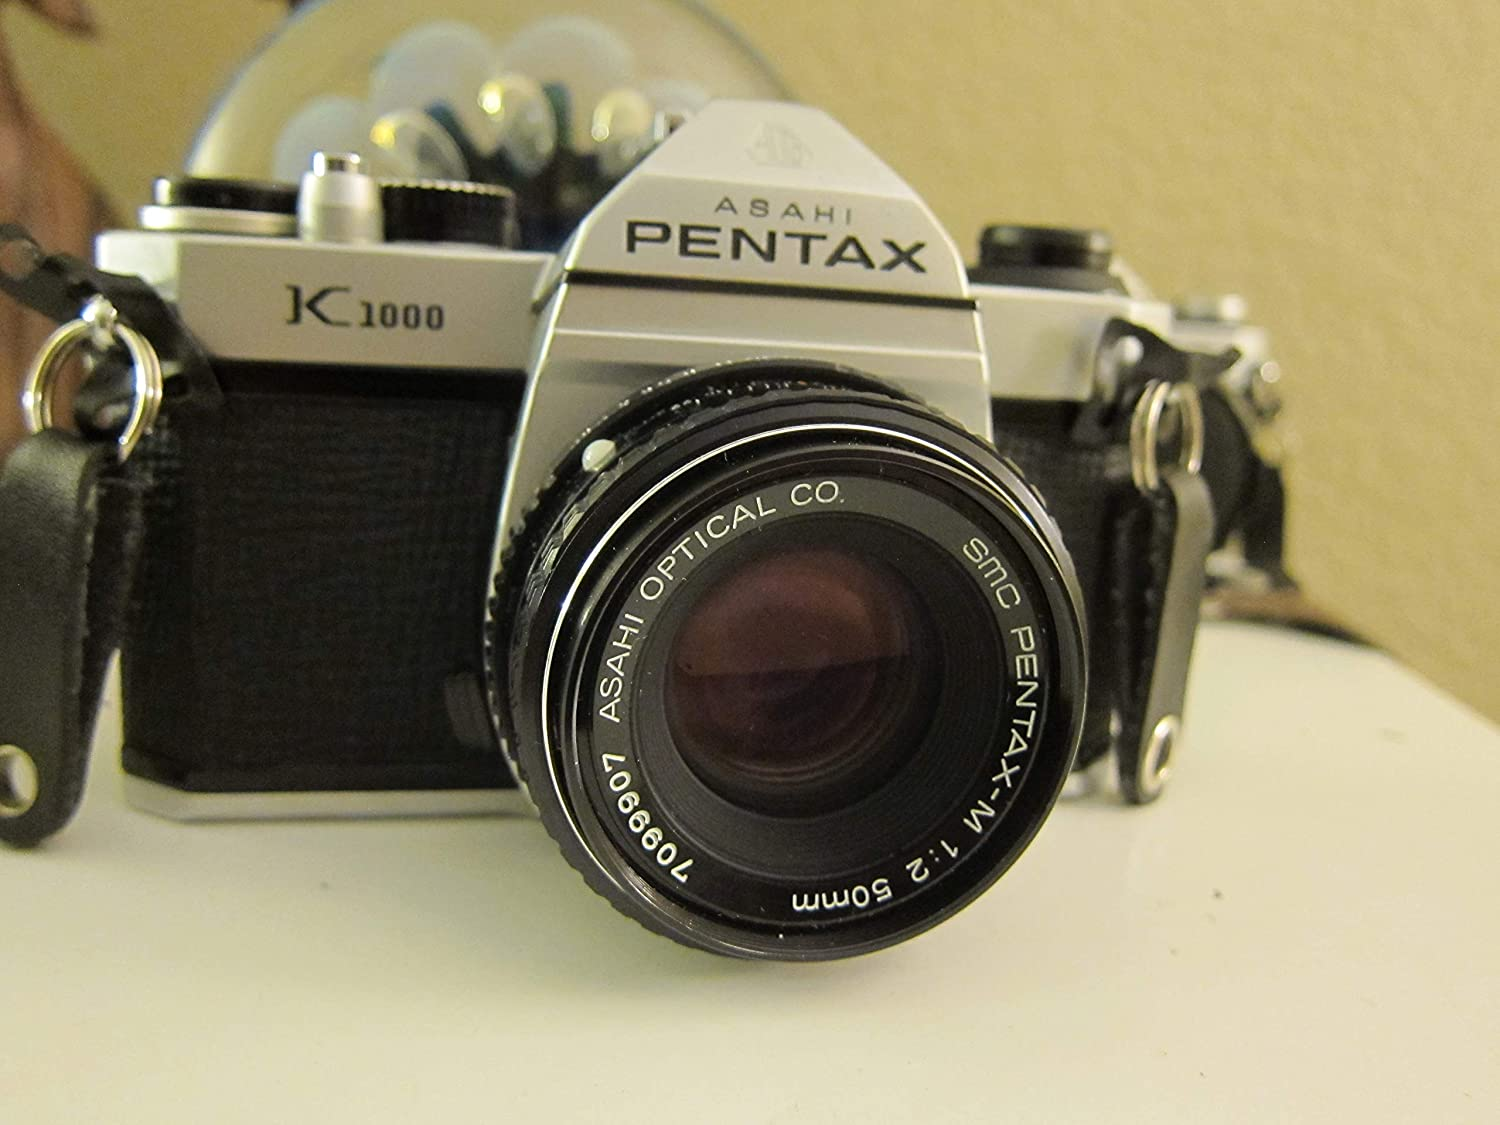 Pentax K1000 Camera with 50mm (f/2.0) Lens